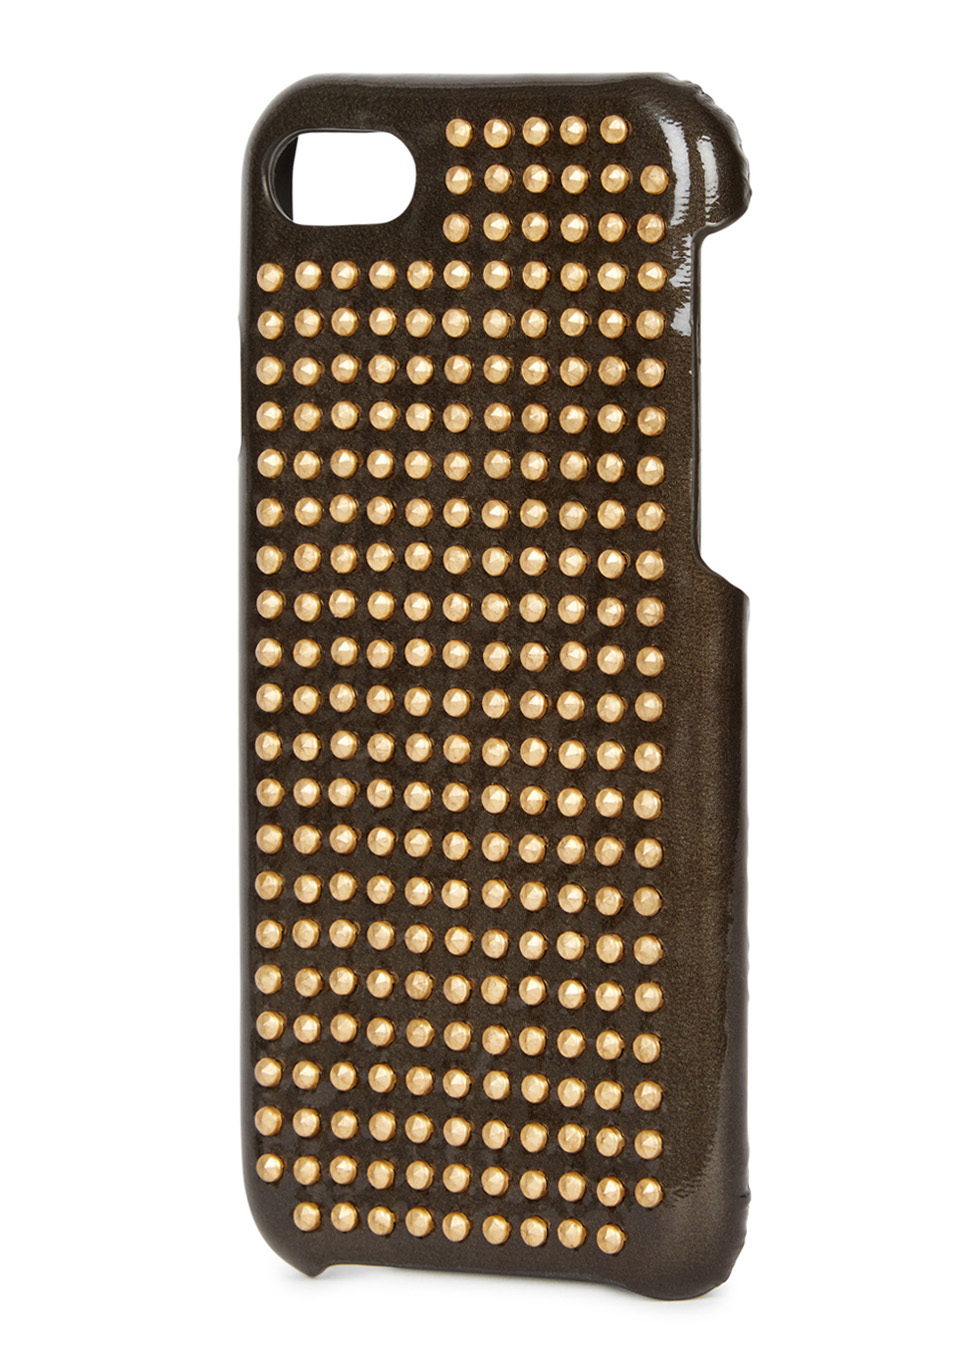 Gunmetal studded glossed leather iPhone 7 case - The Case Factory